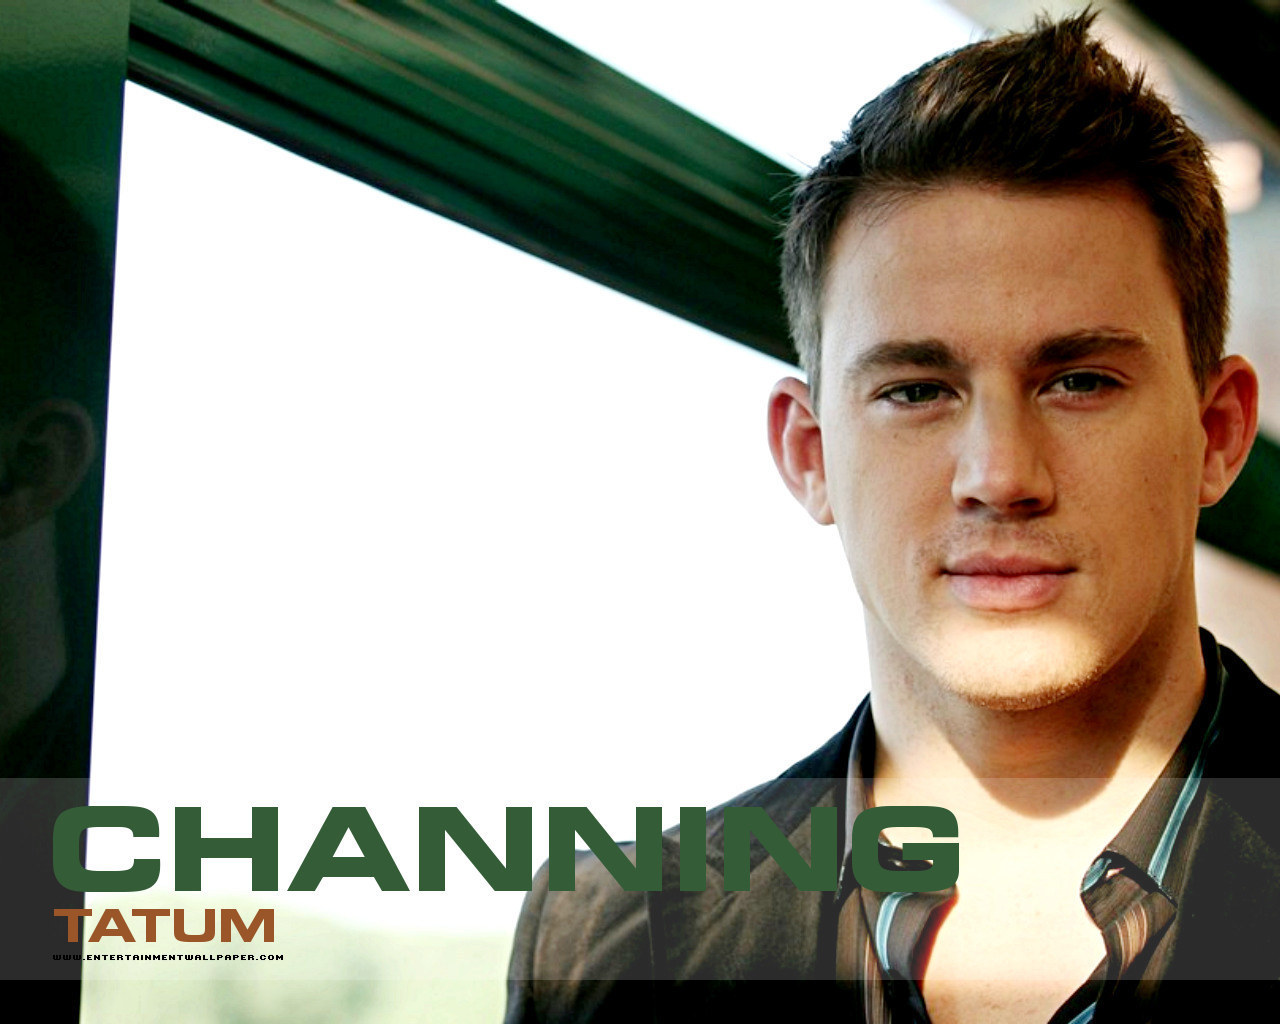 channing tatum images channing wallpaper photos 6466340